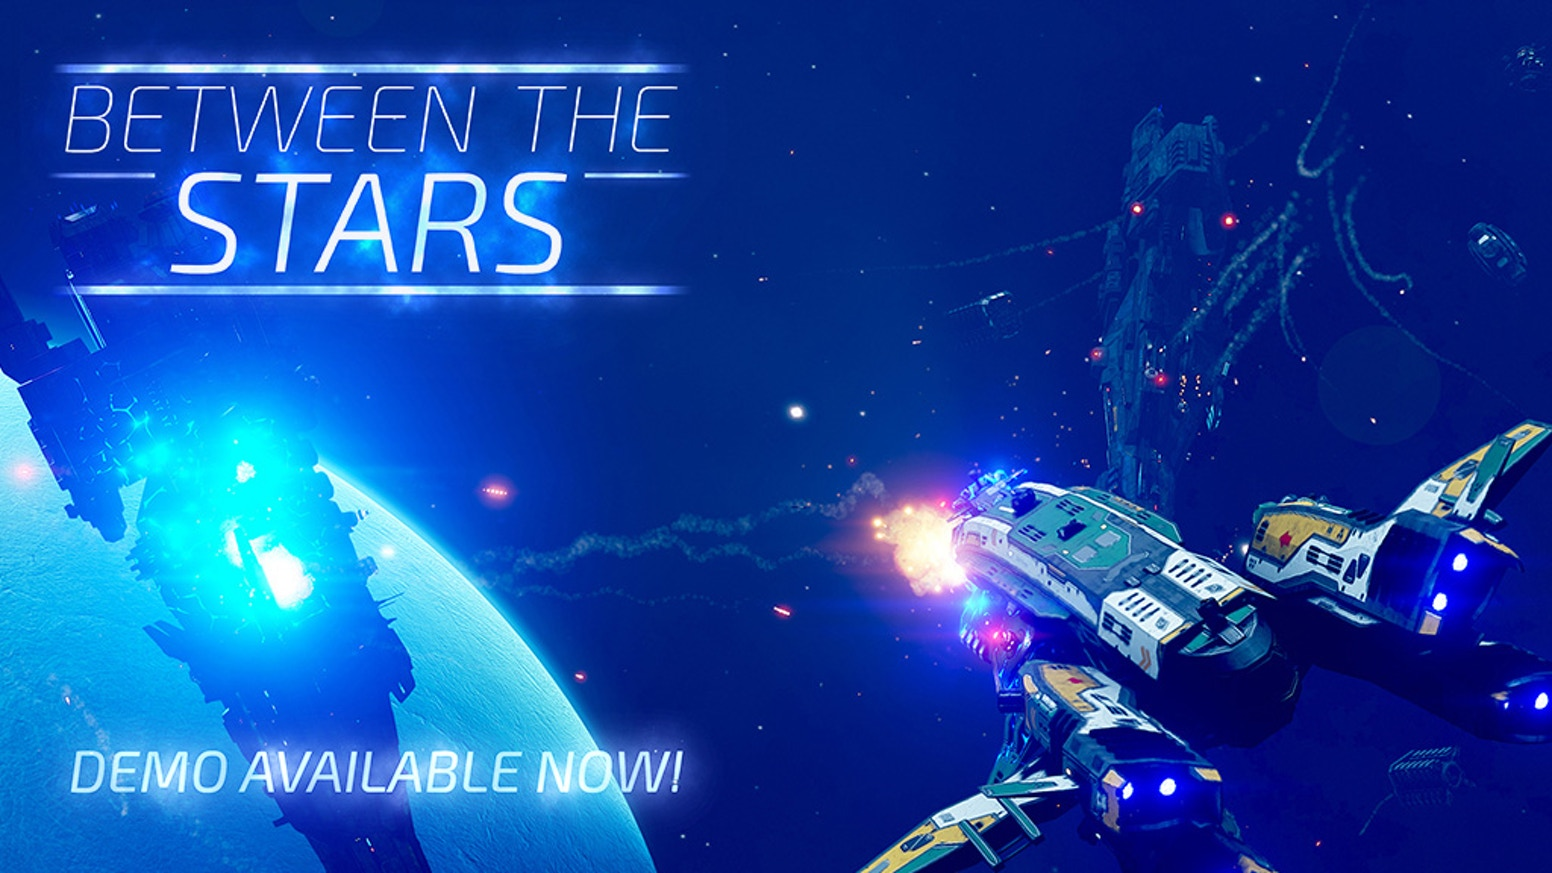 Between the Stars is a Non-Linear Space Faring Roguelike ARPG  with a heavy focus on events and player choice.